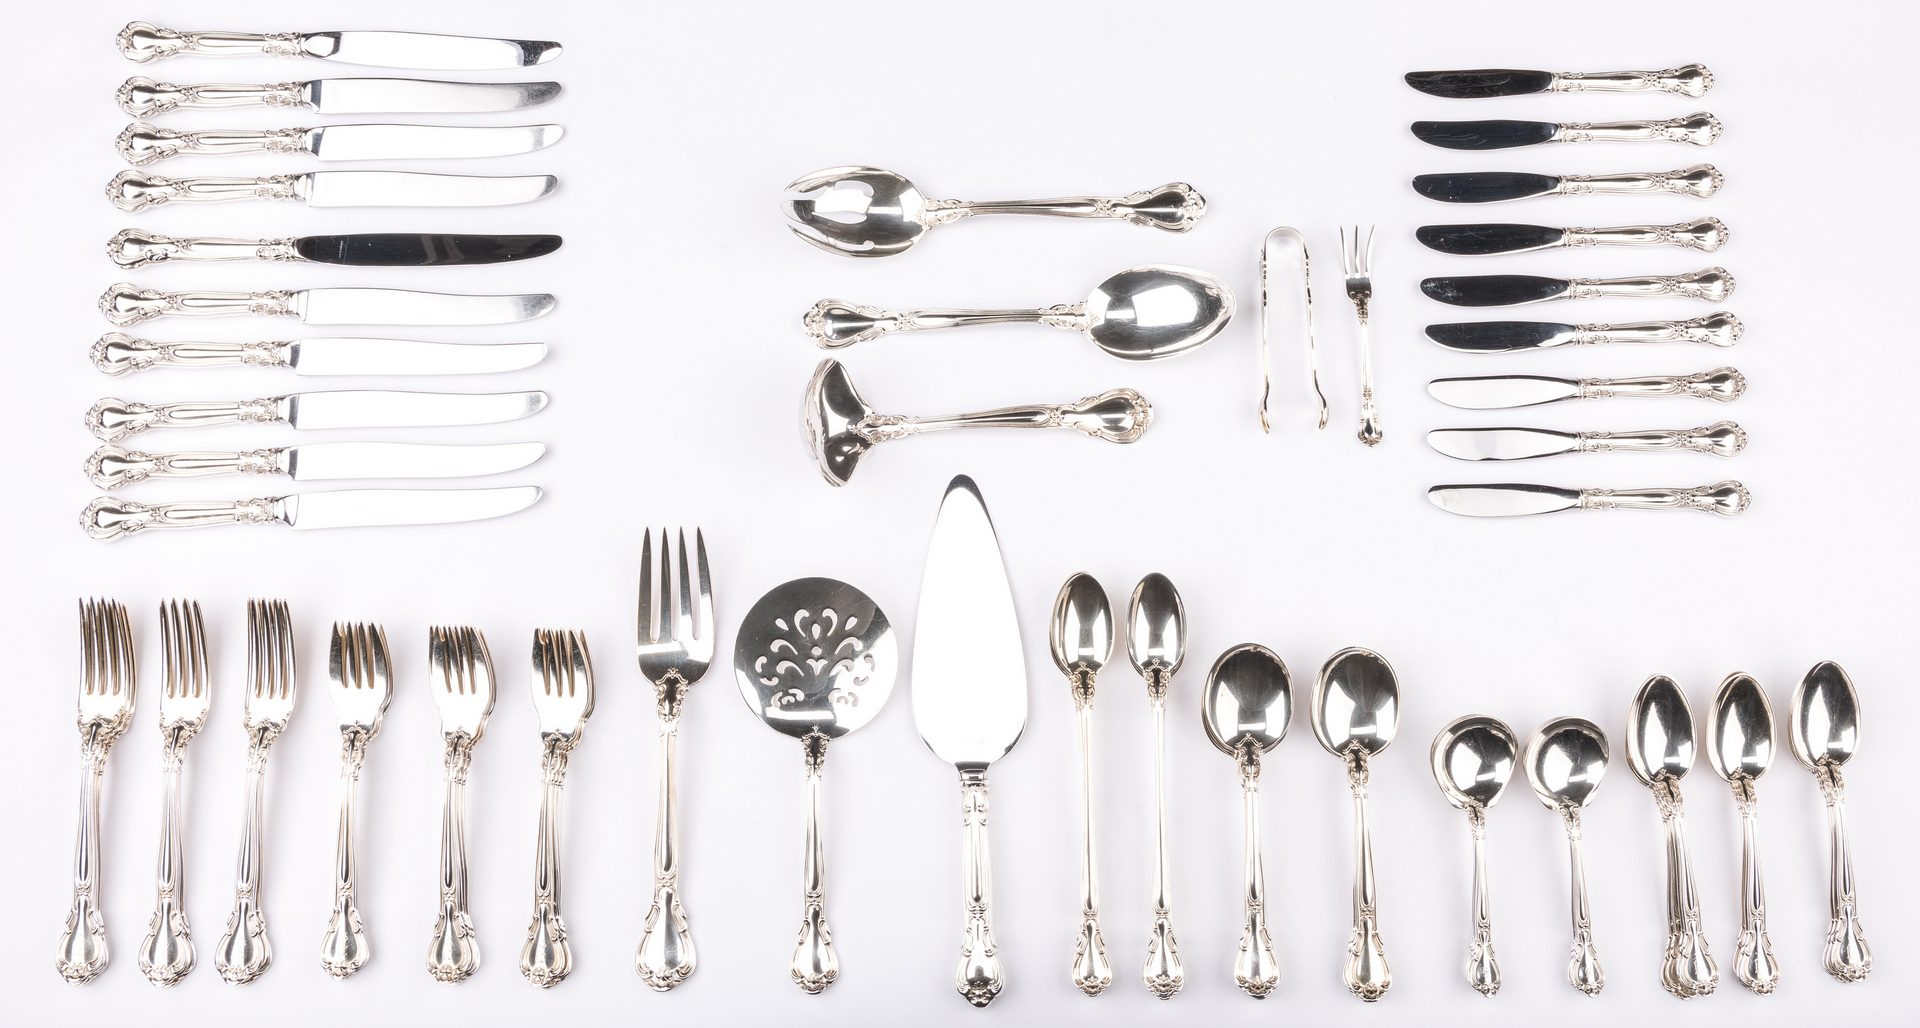 Lot 74: 74 Pcs Gorham Chantilly Flatware + 1 other